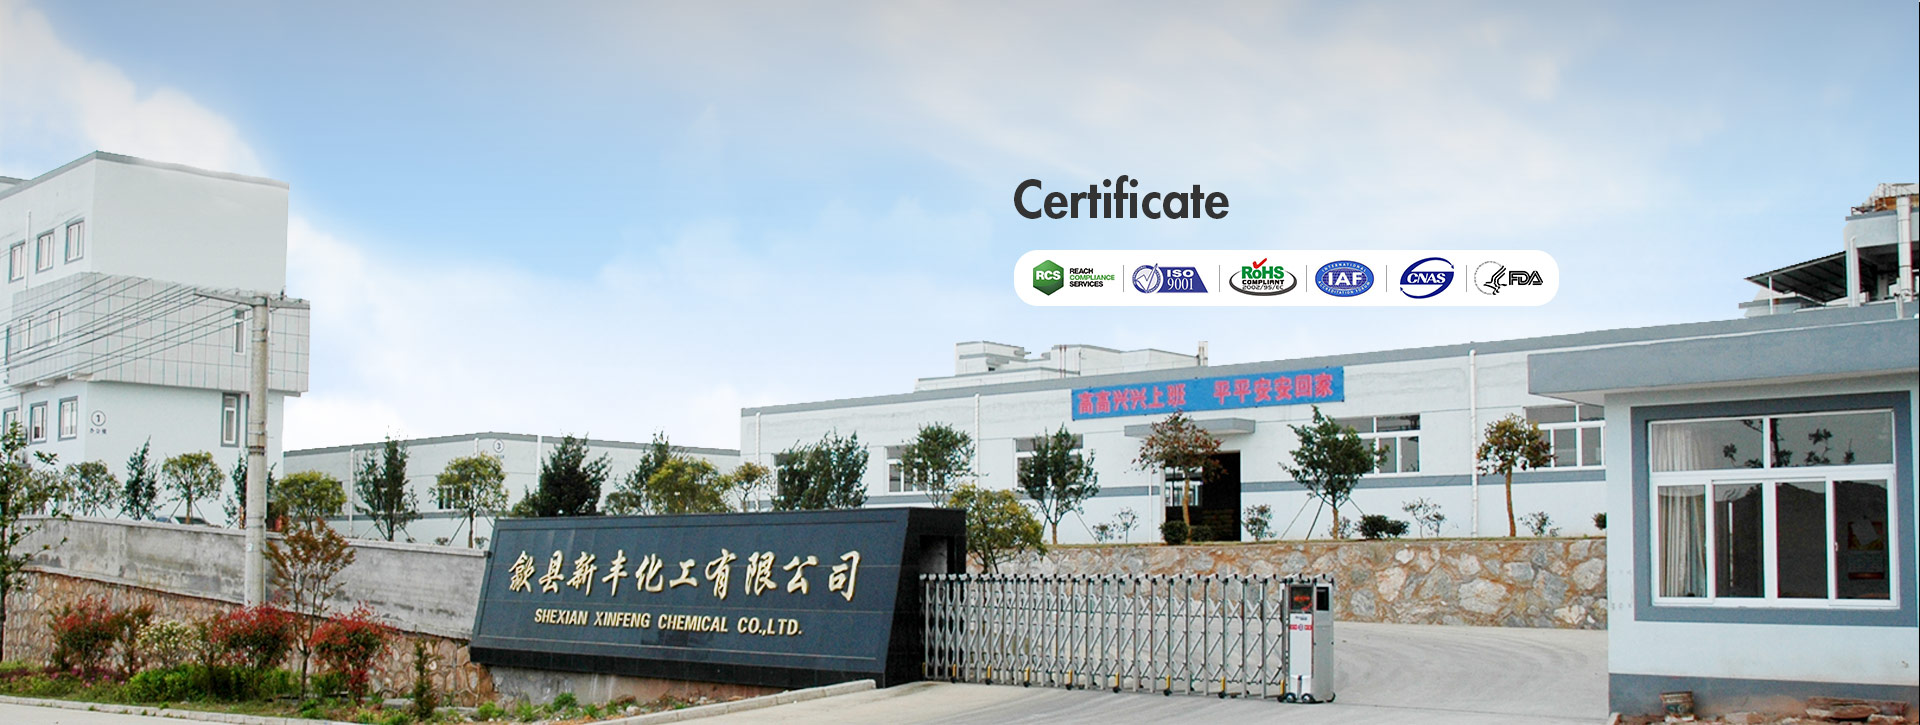 Kunshan pan gao chemical co., LTD.